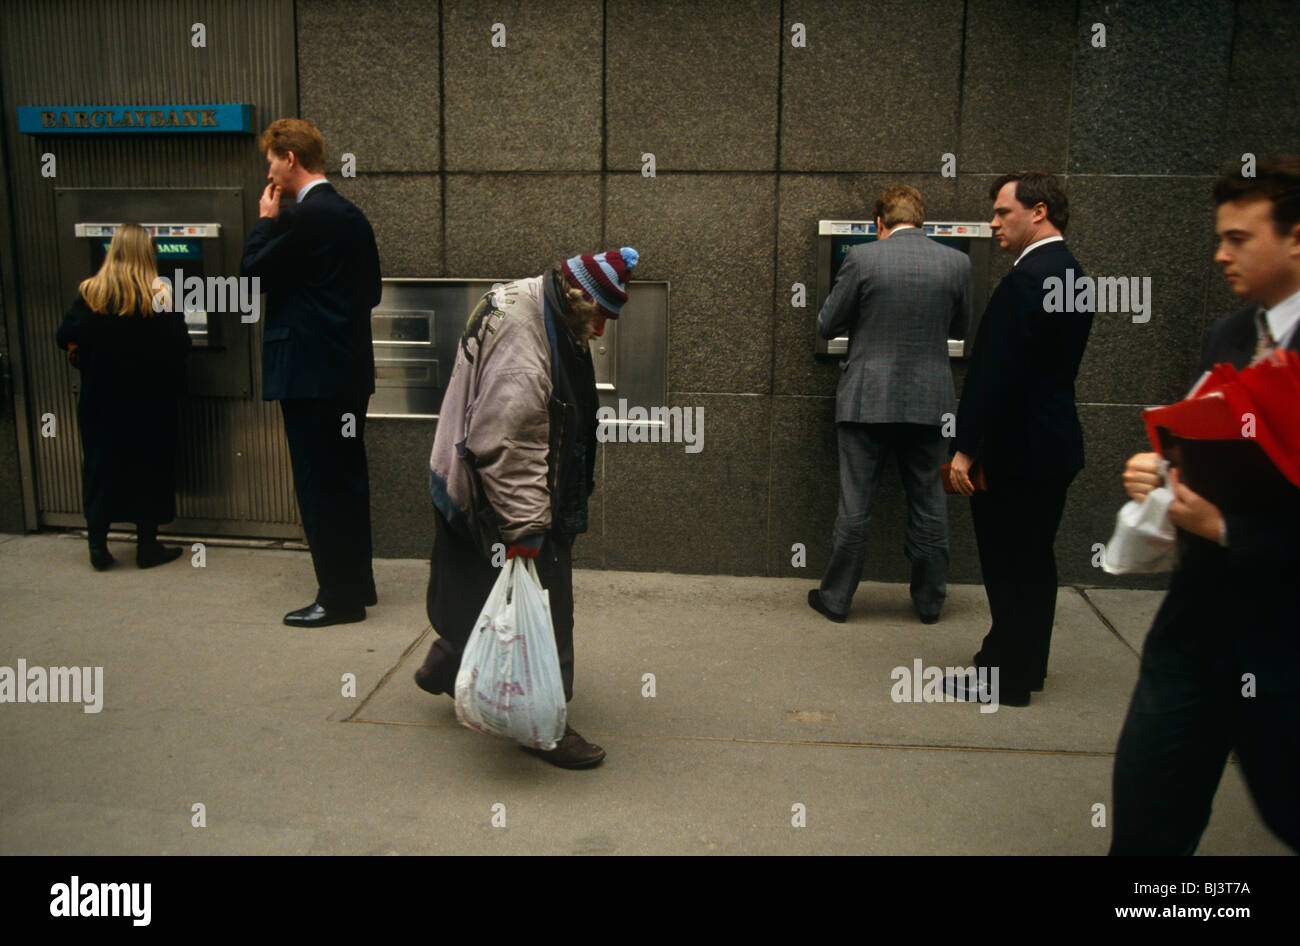 an-elderly-homeless-man-shuffles-past-a-